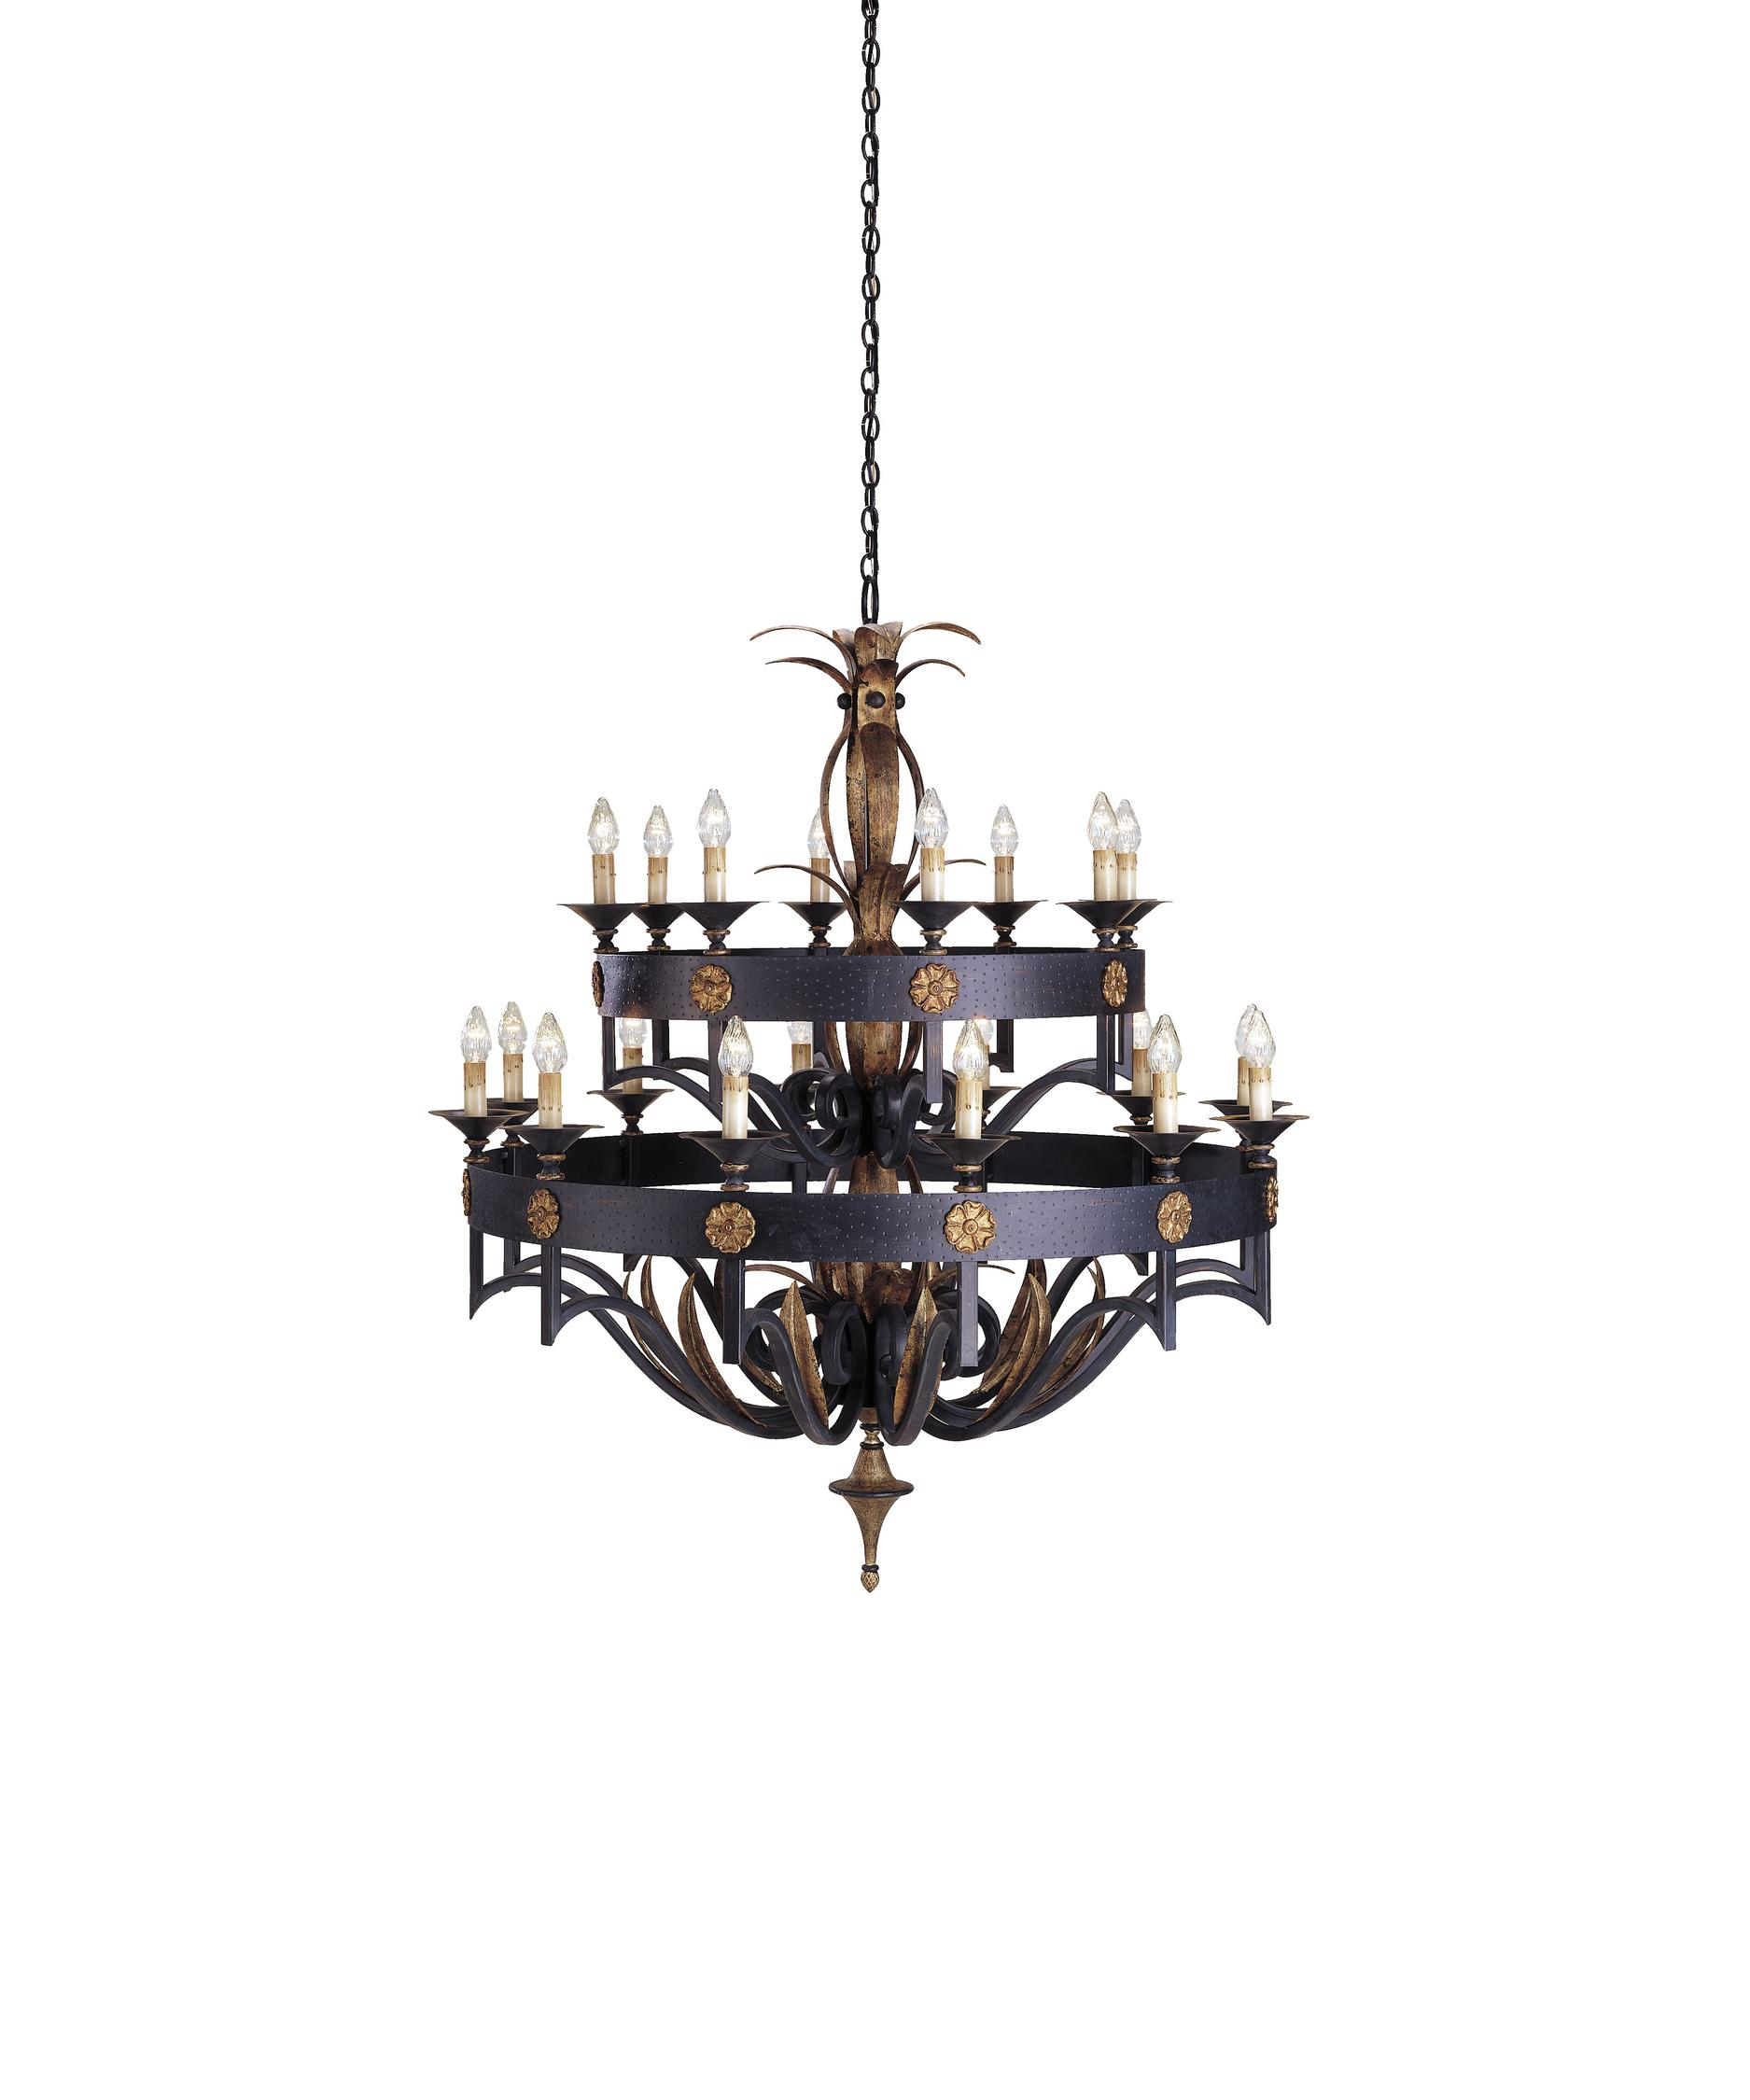 Currey And Company Bathroom Lighting: Currey And Company 9837 Camelot 50 Inch Chandelier